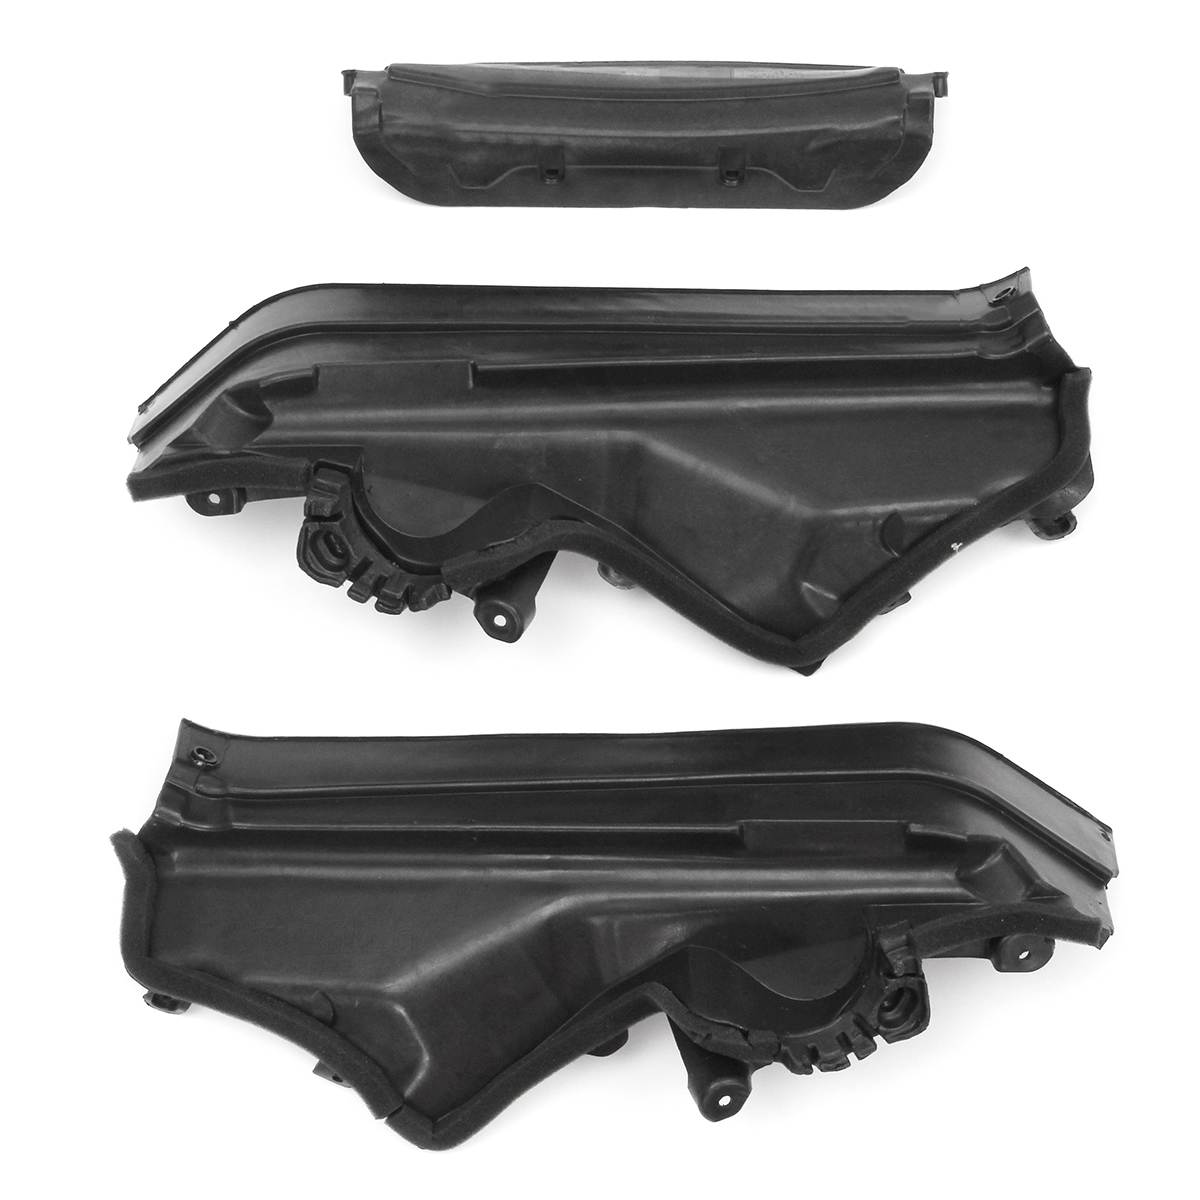 High Quality 3pcs Car Engine Upper Compartment Partition Panel Set For BMW X5 X6 E70 E71 E72 51717169419 51717169420 51717169421